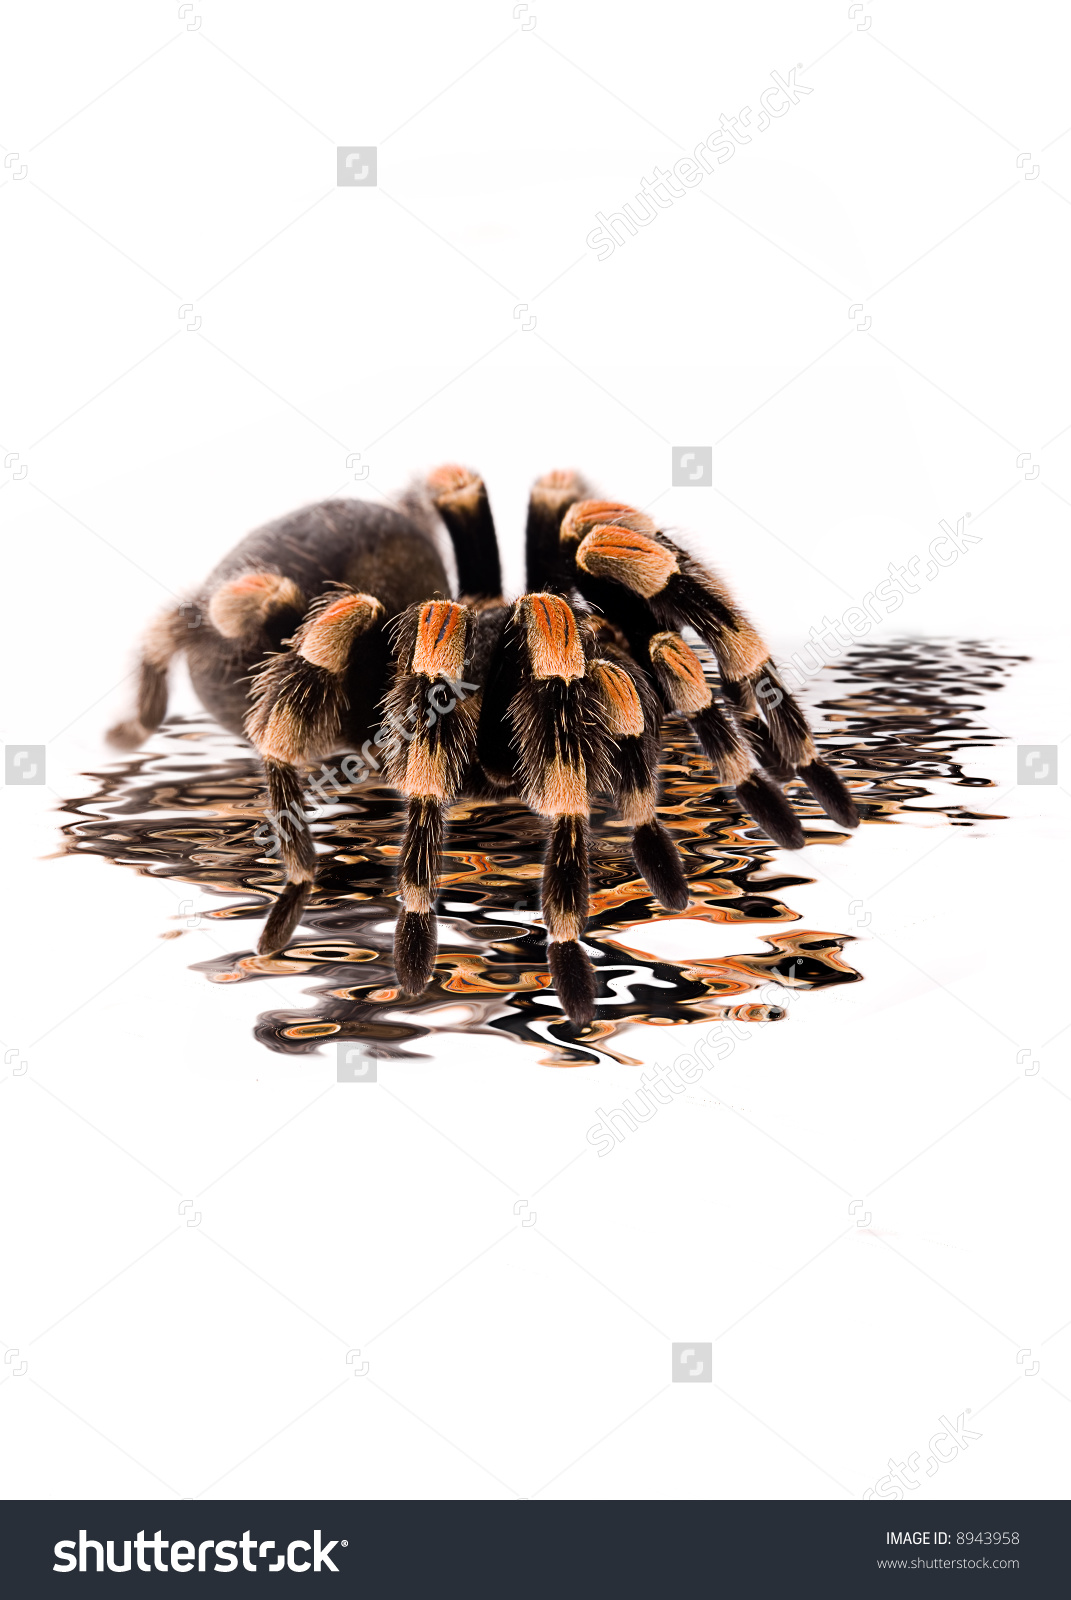 Pet Mexican Red Knee Tarantula Stock Photo 8943958 : Shutterstock.